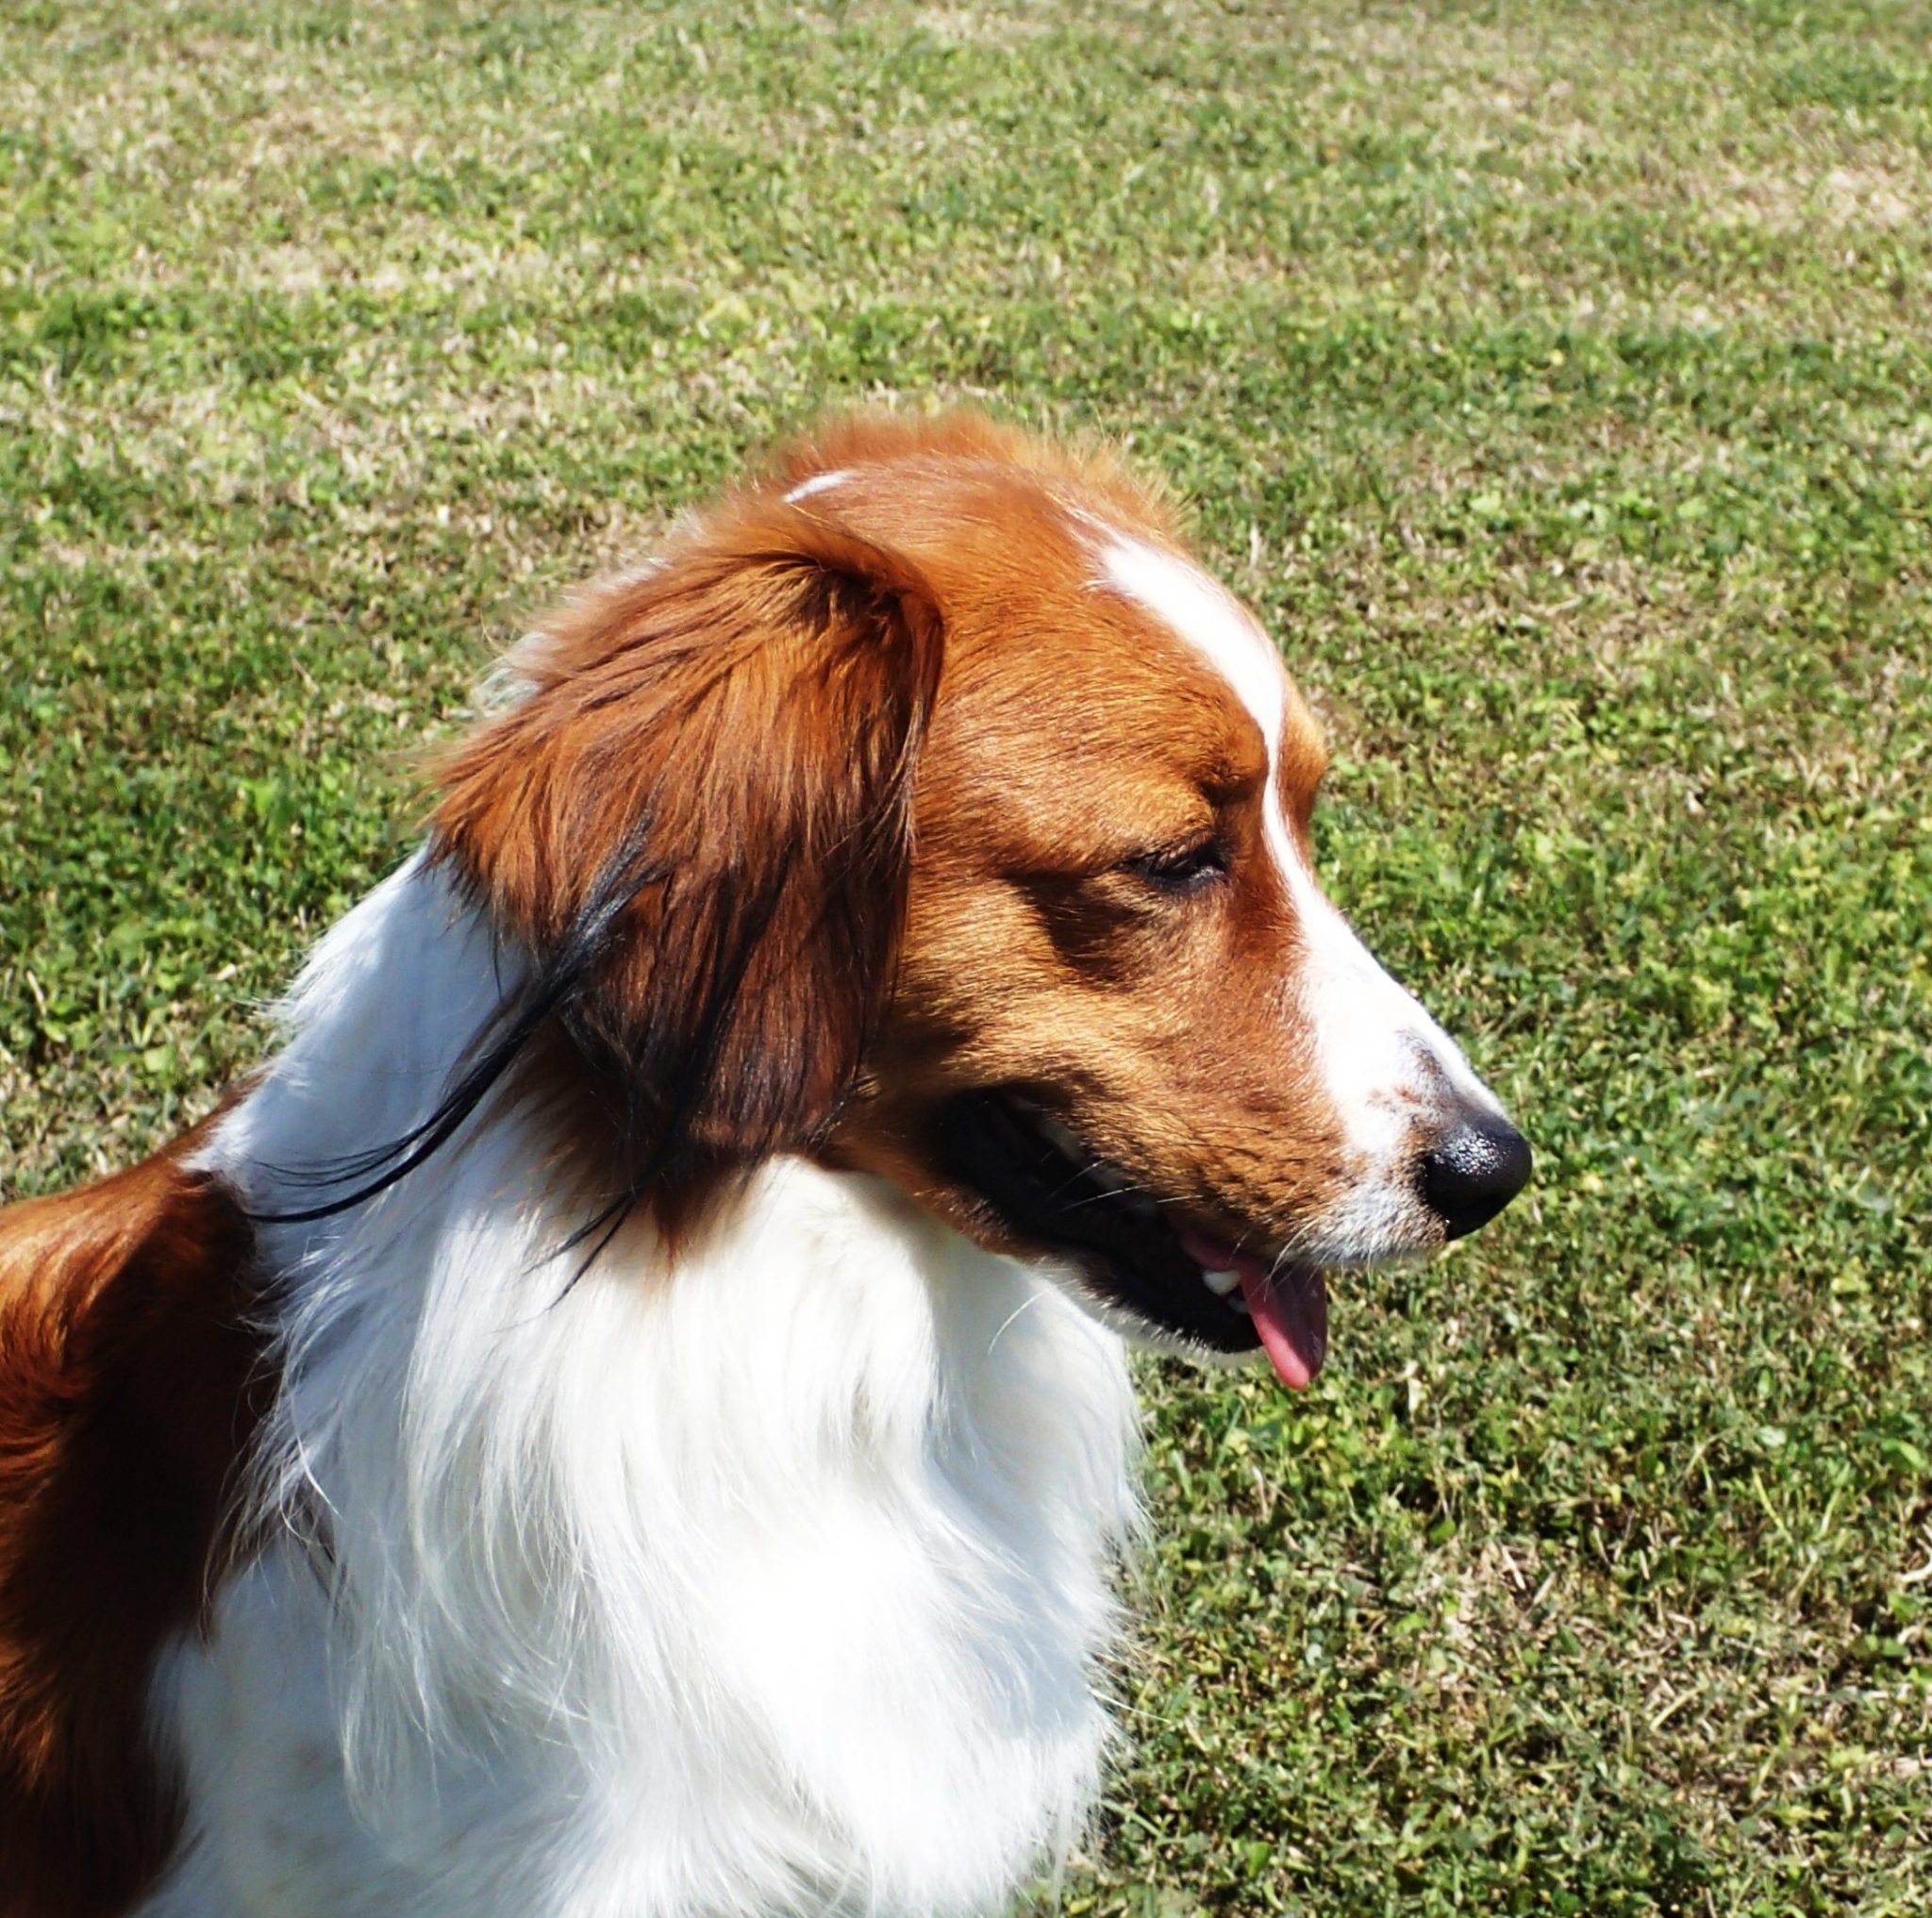 Waterbound's 5th Kooikerhondje  is  now listed on the Canine Health Information Center's  Web Site